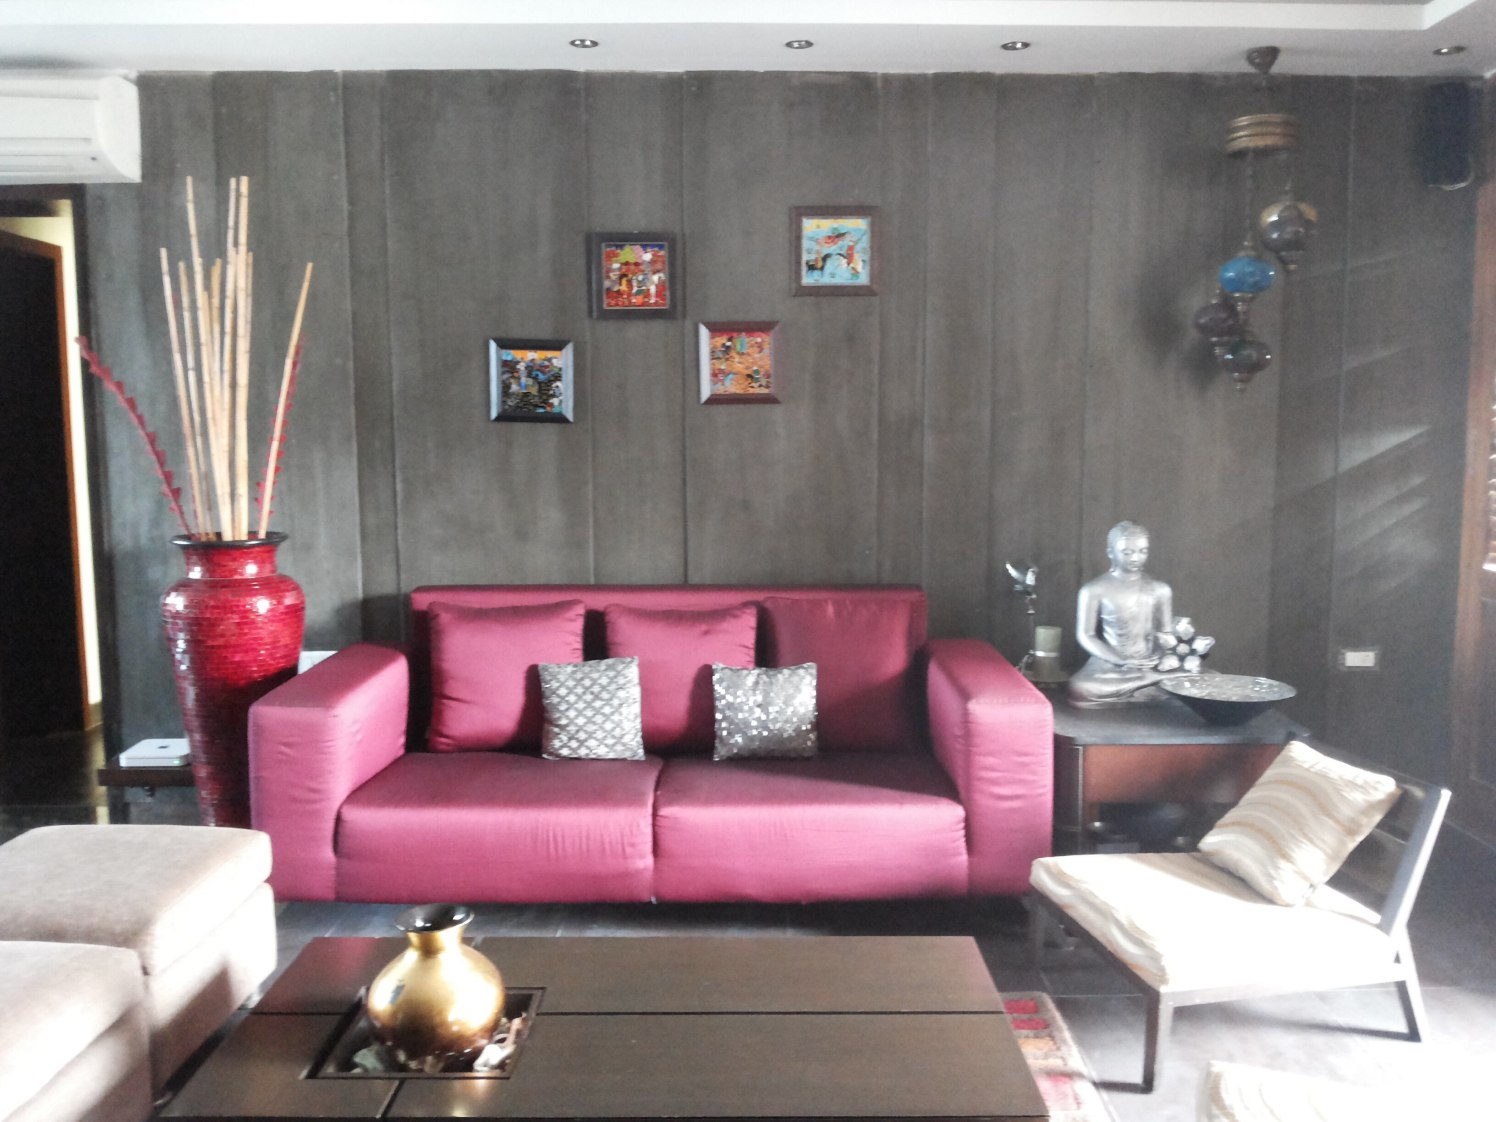 Living space with wooden wall decor and pink sofa by Milind Kapadia Living-room Modern | Interior Design Photos & Ideas